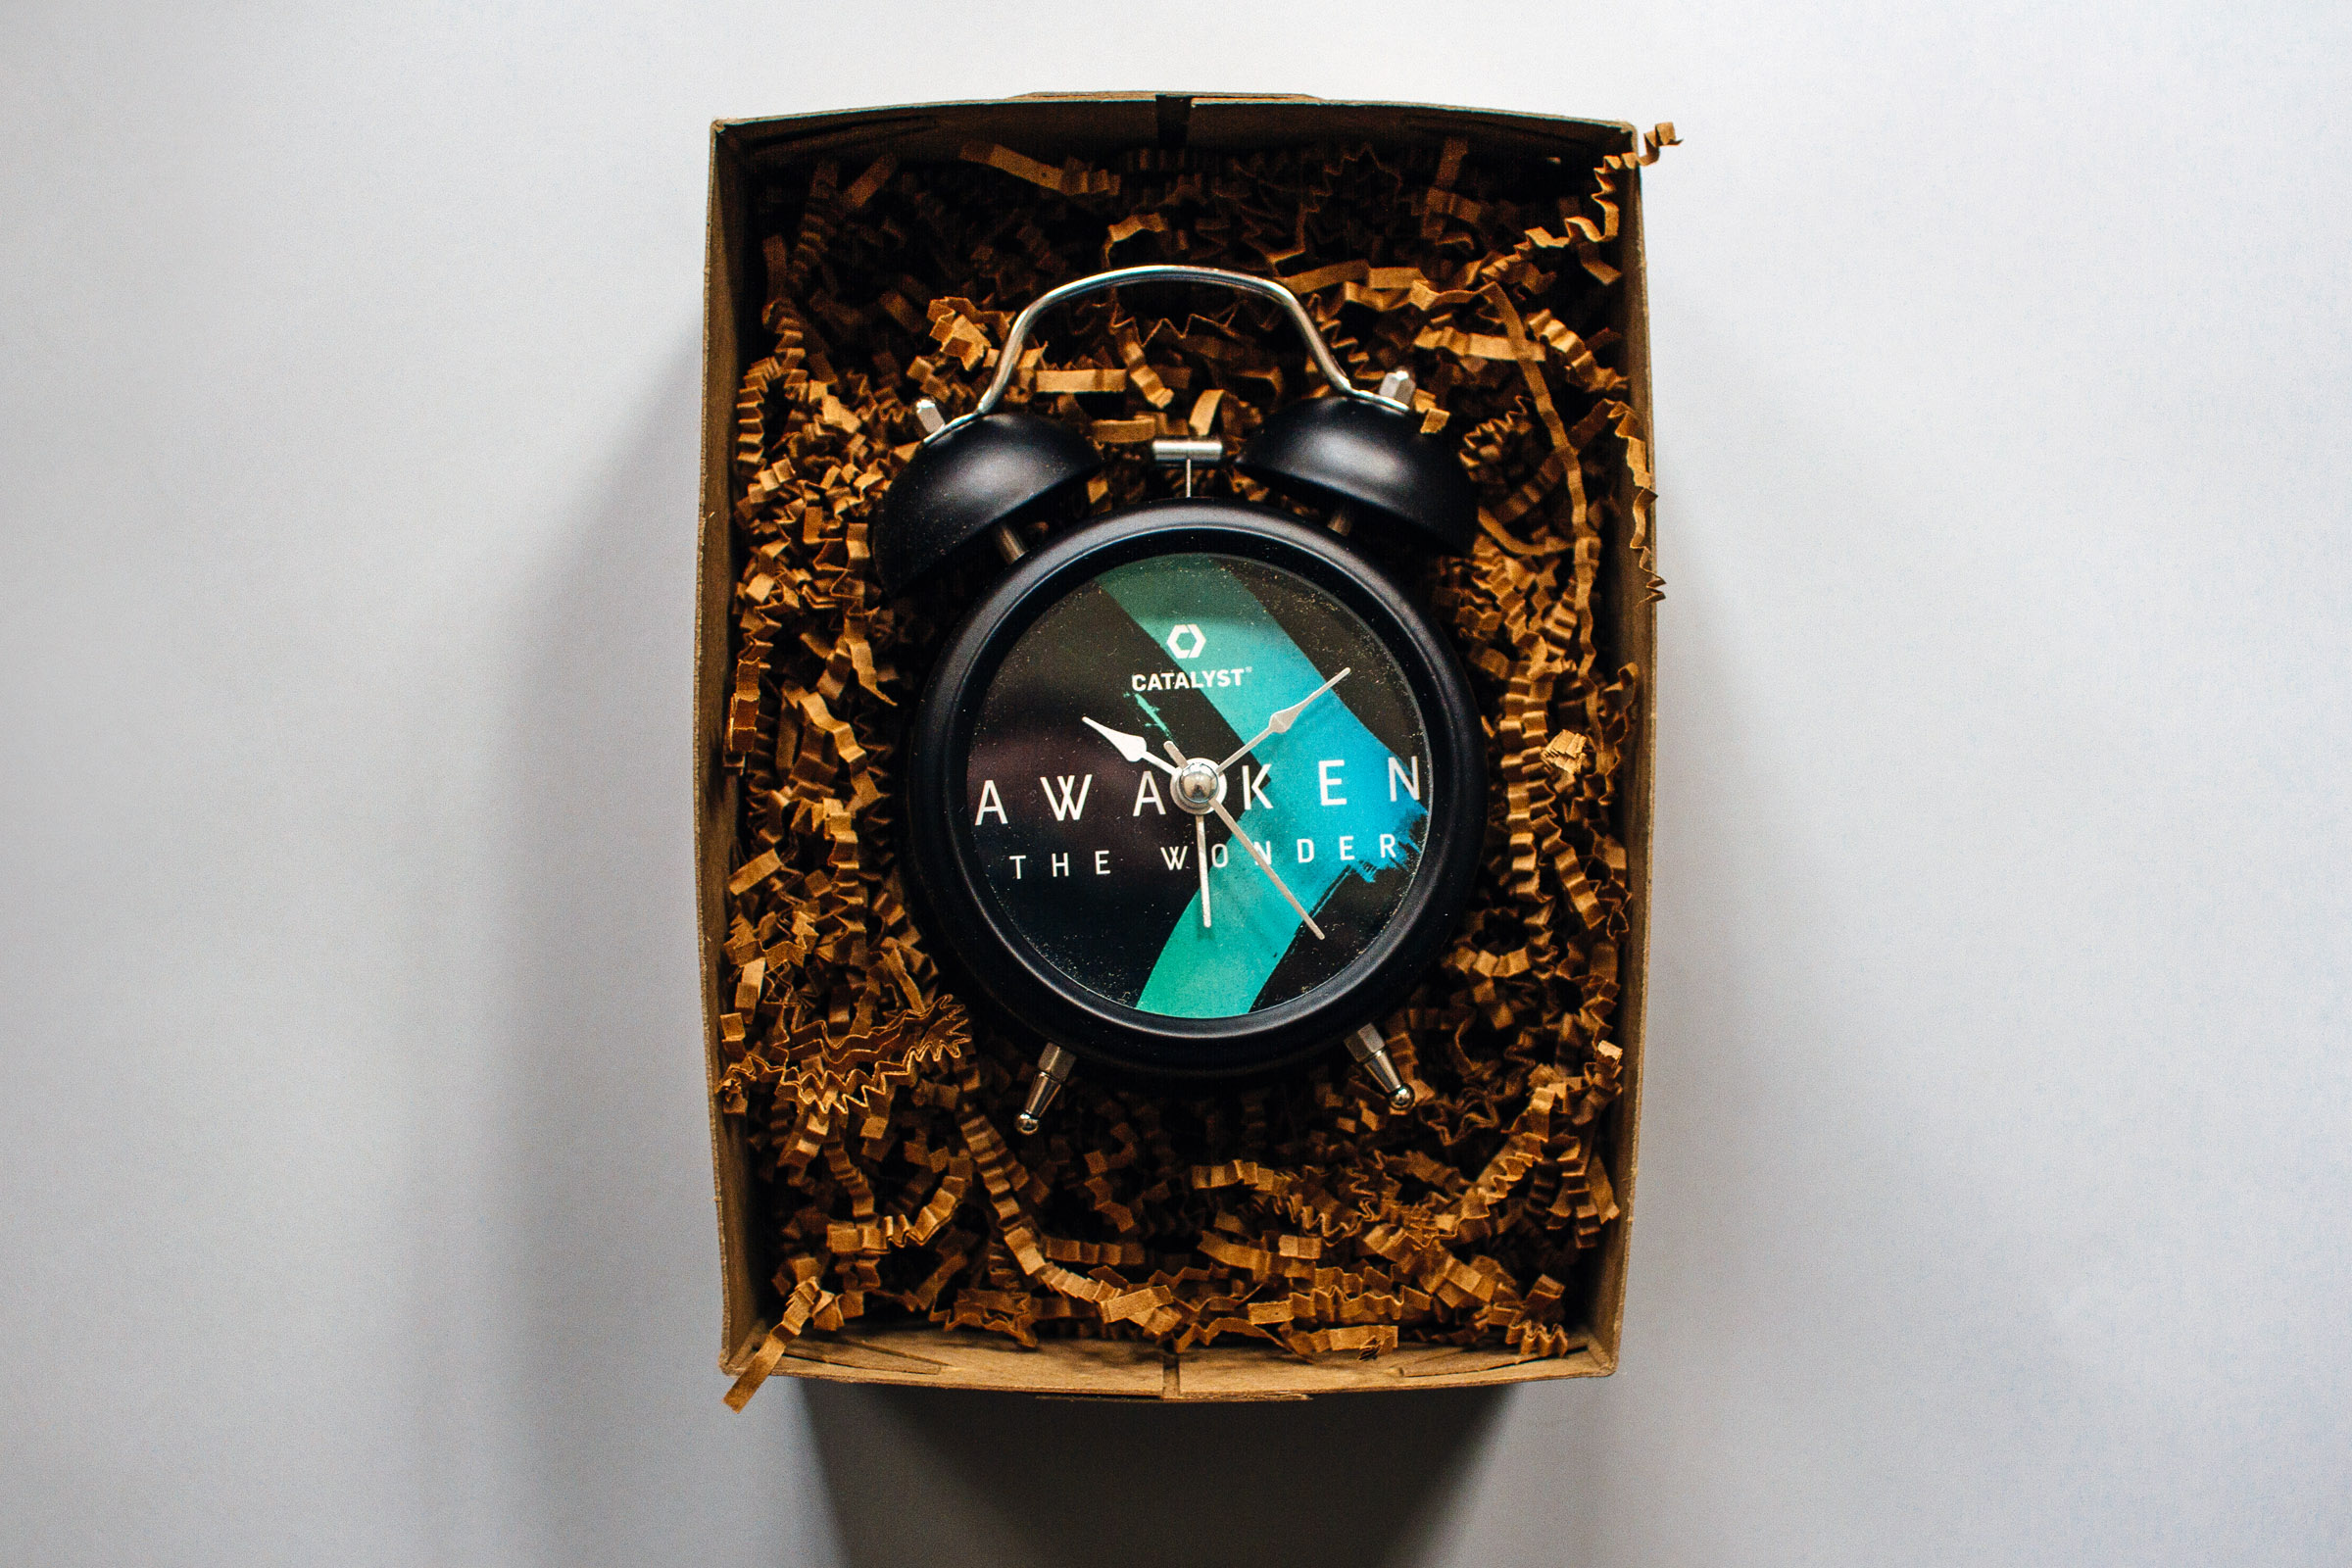 Custom printed vintage alarm clock for Catalyst Conference 2015 Atlanta Awaken the Wonder event theme promotion in a box surrounded by kraft krinkle paper